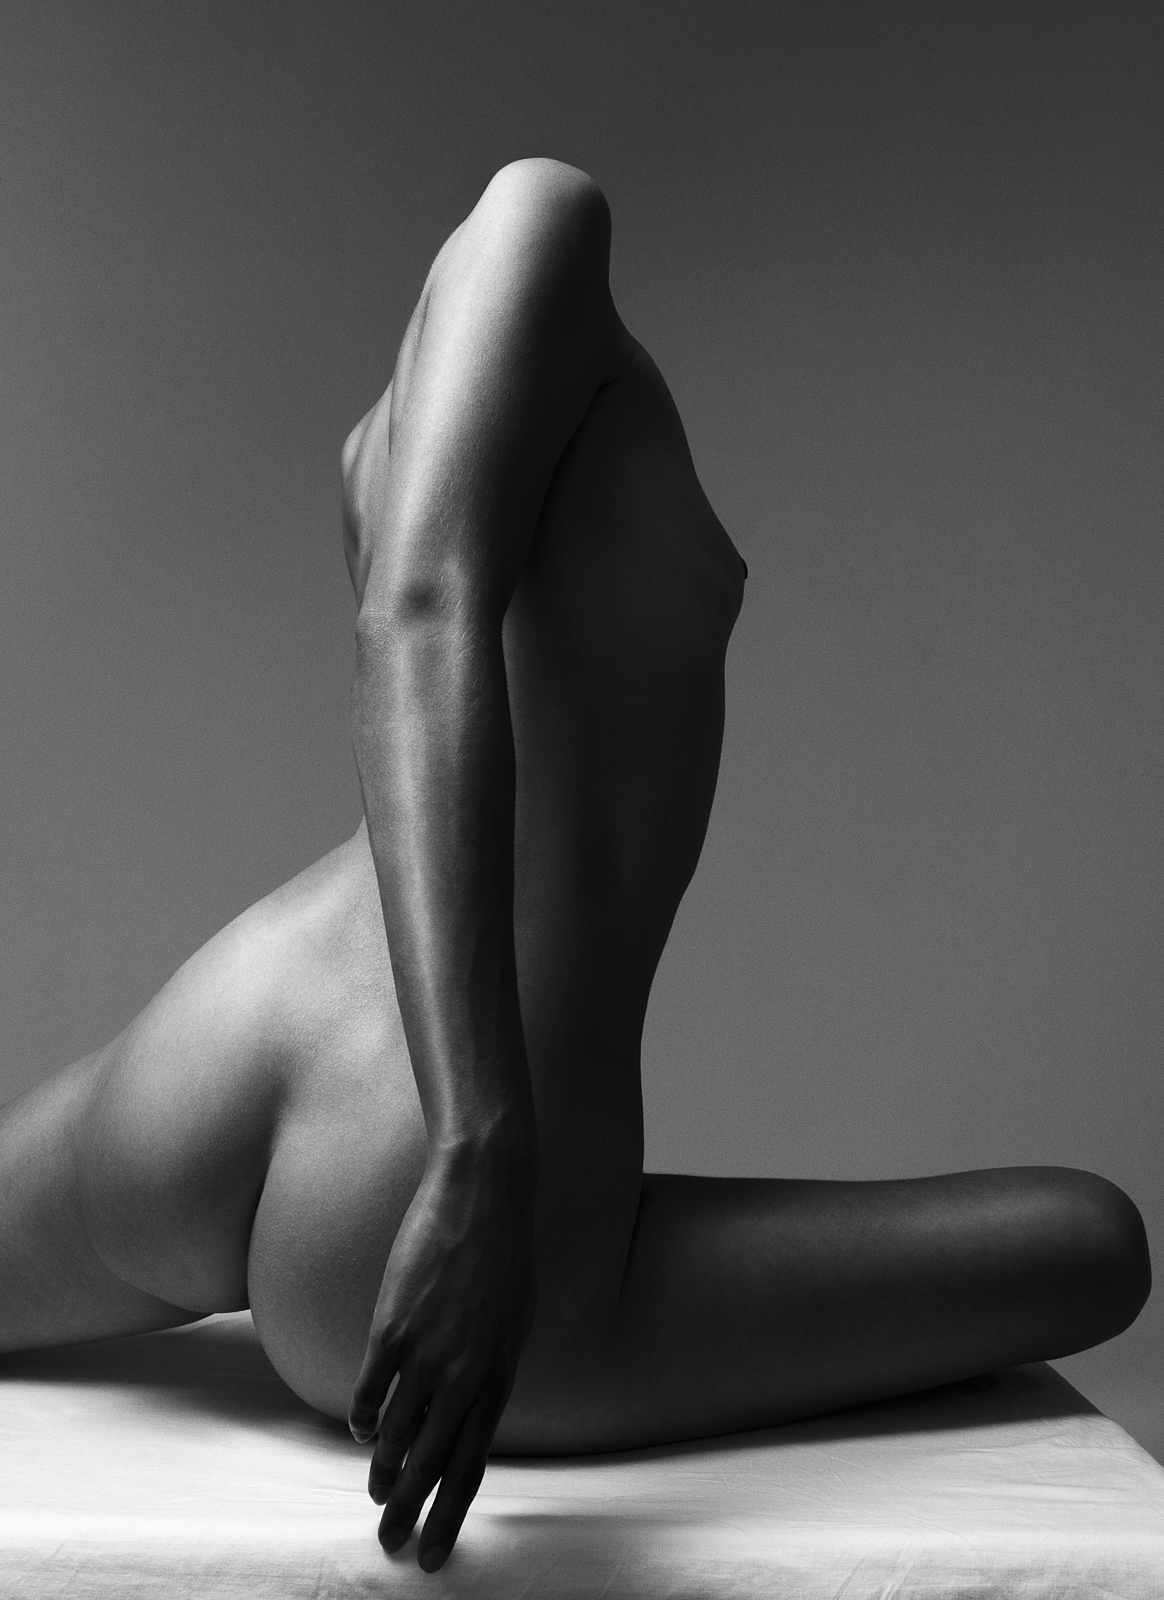 Nude Photography, The Art And The Craft, By Pascal Baetens